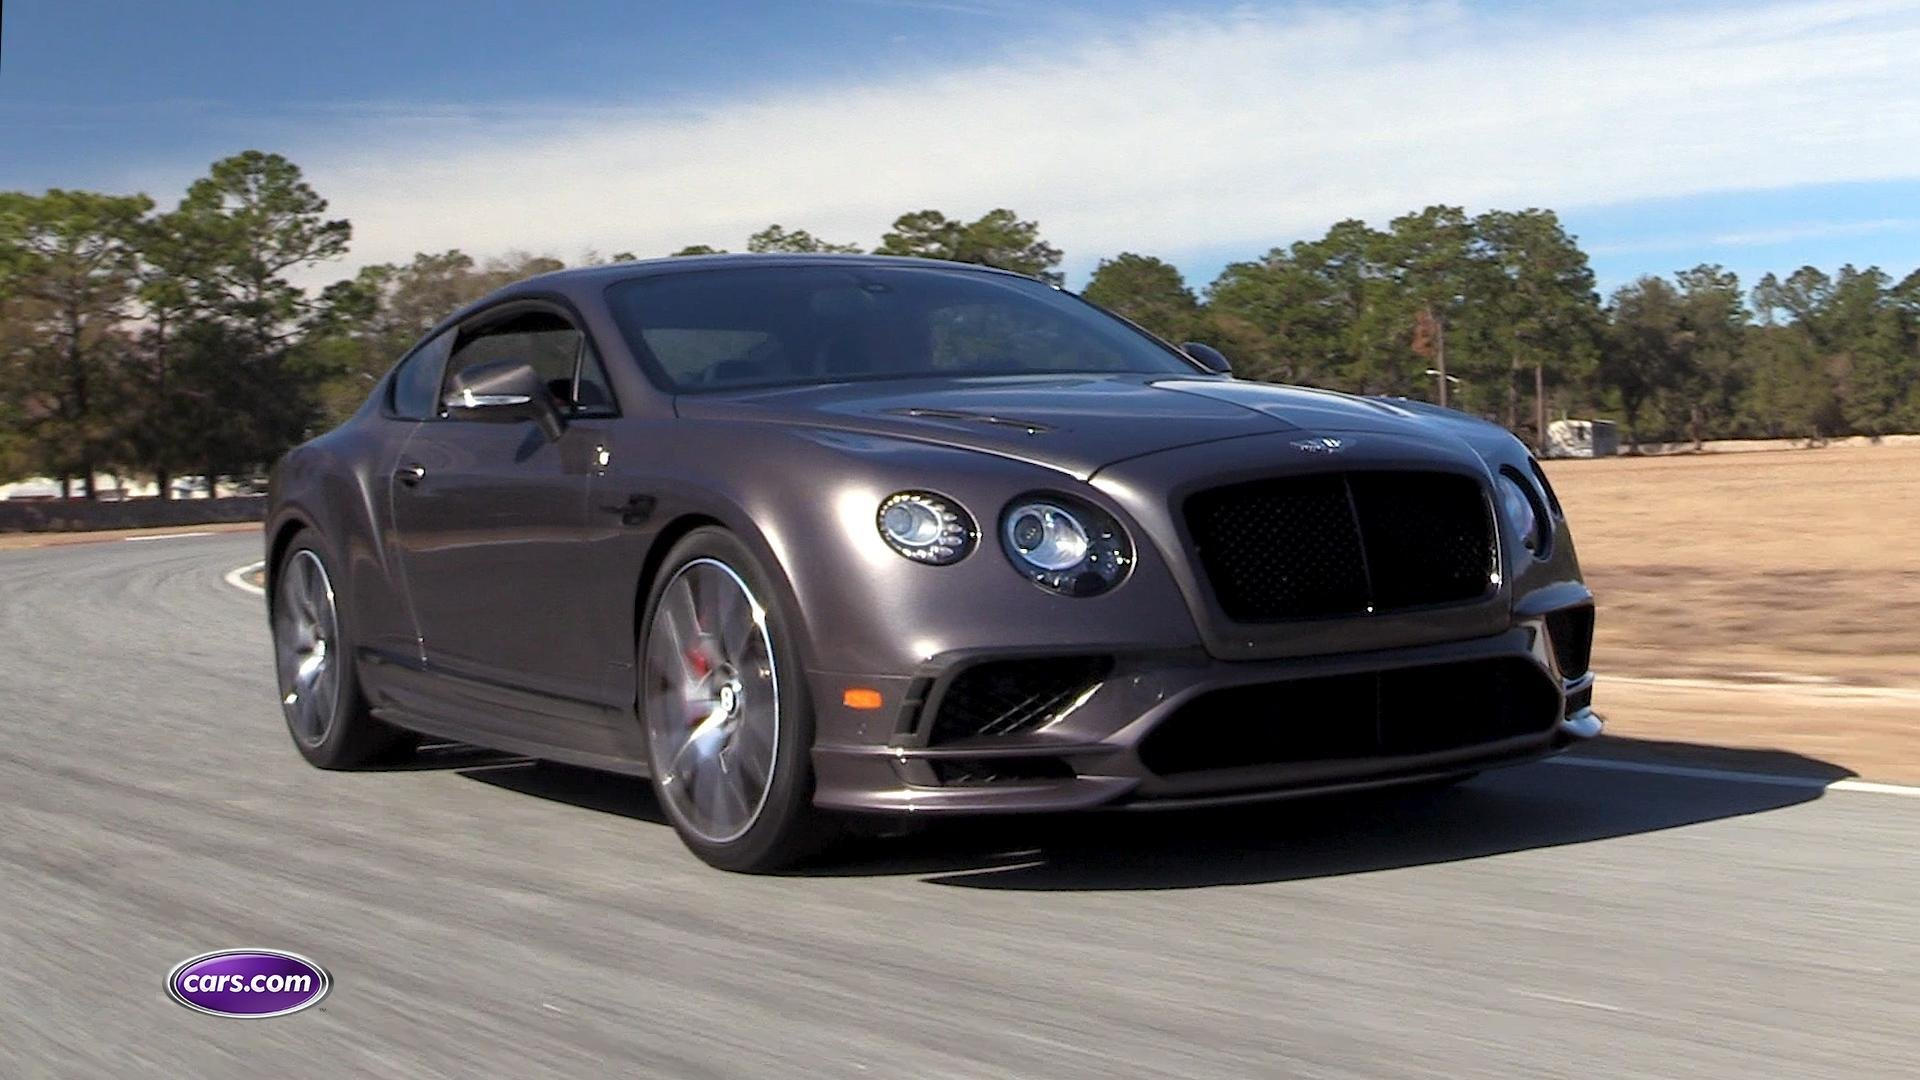 Latest Bentley Latest Models Pricing Mpg And Ratings Cars Com Free Download